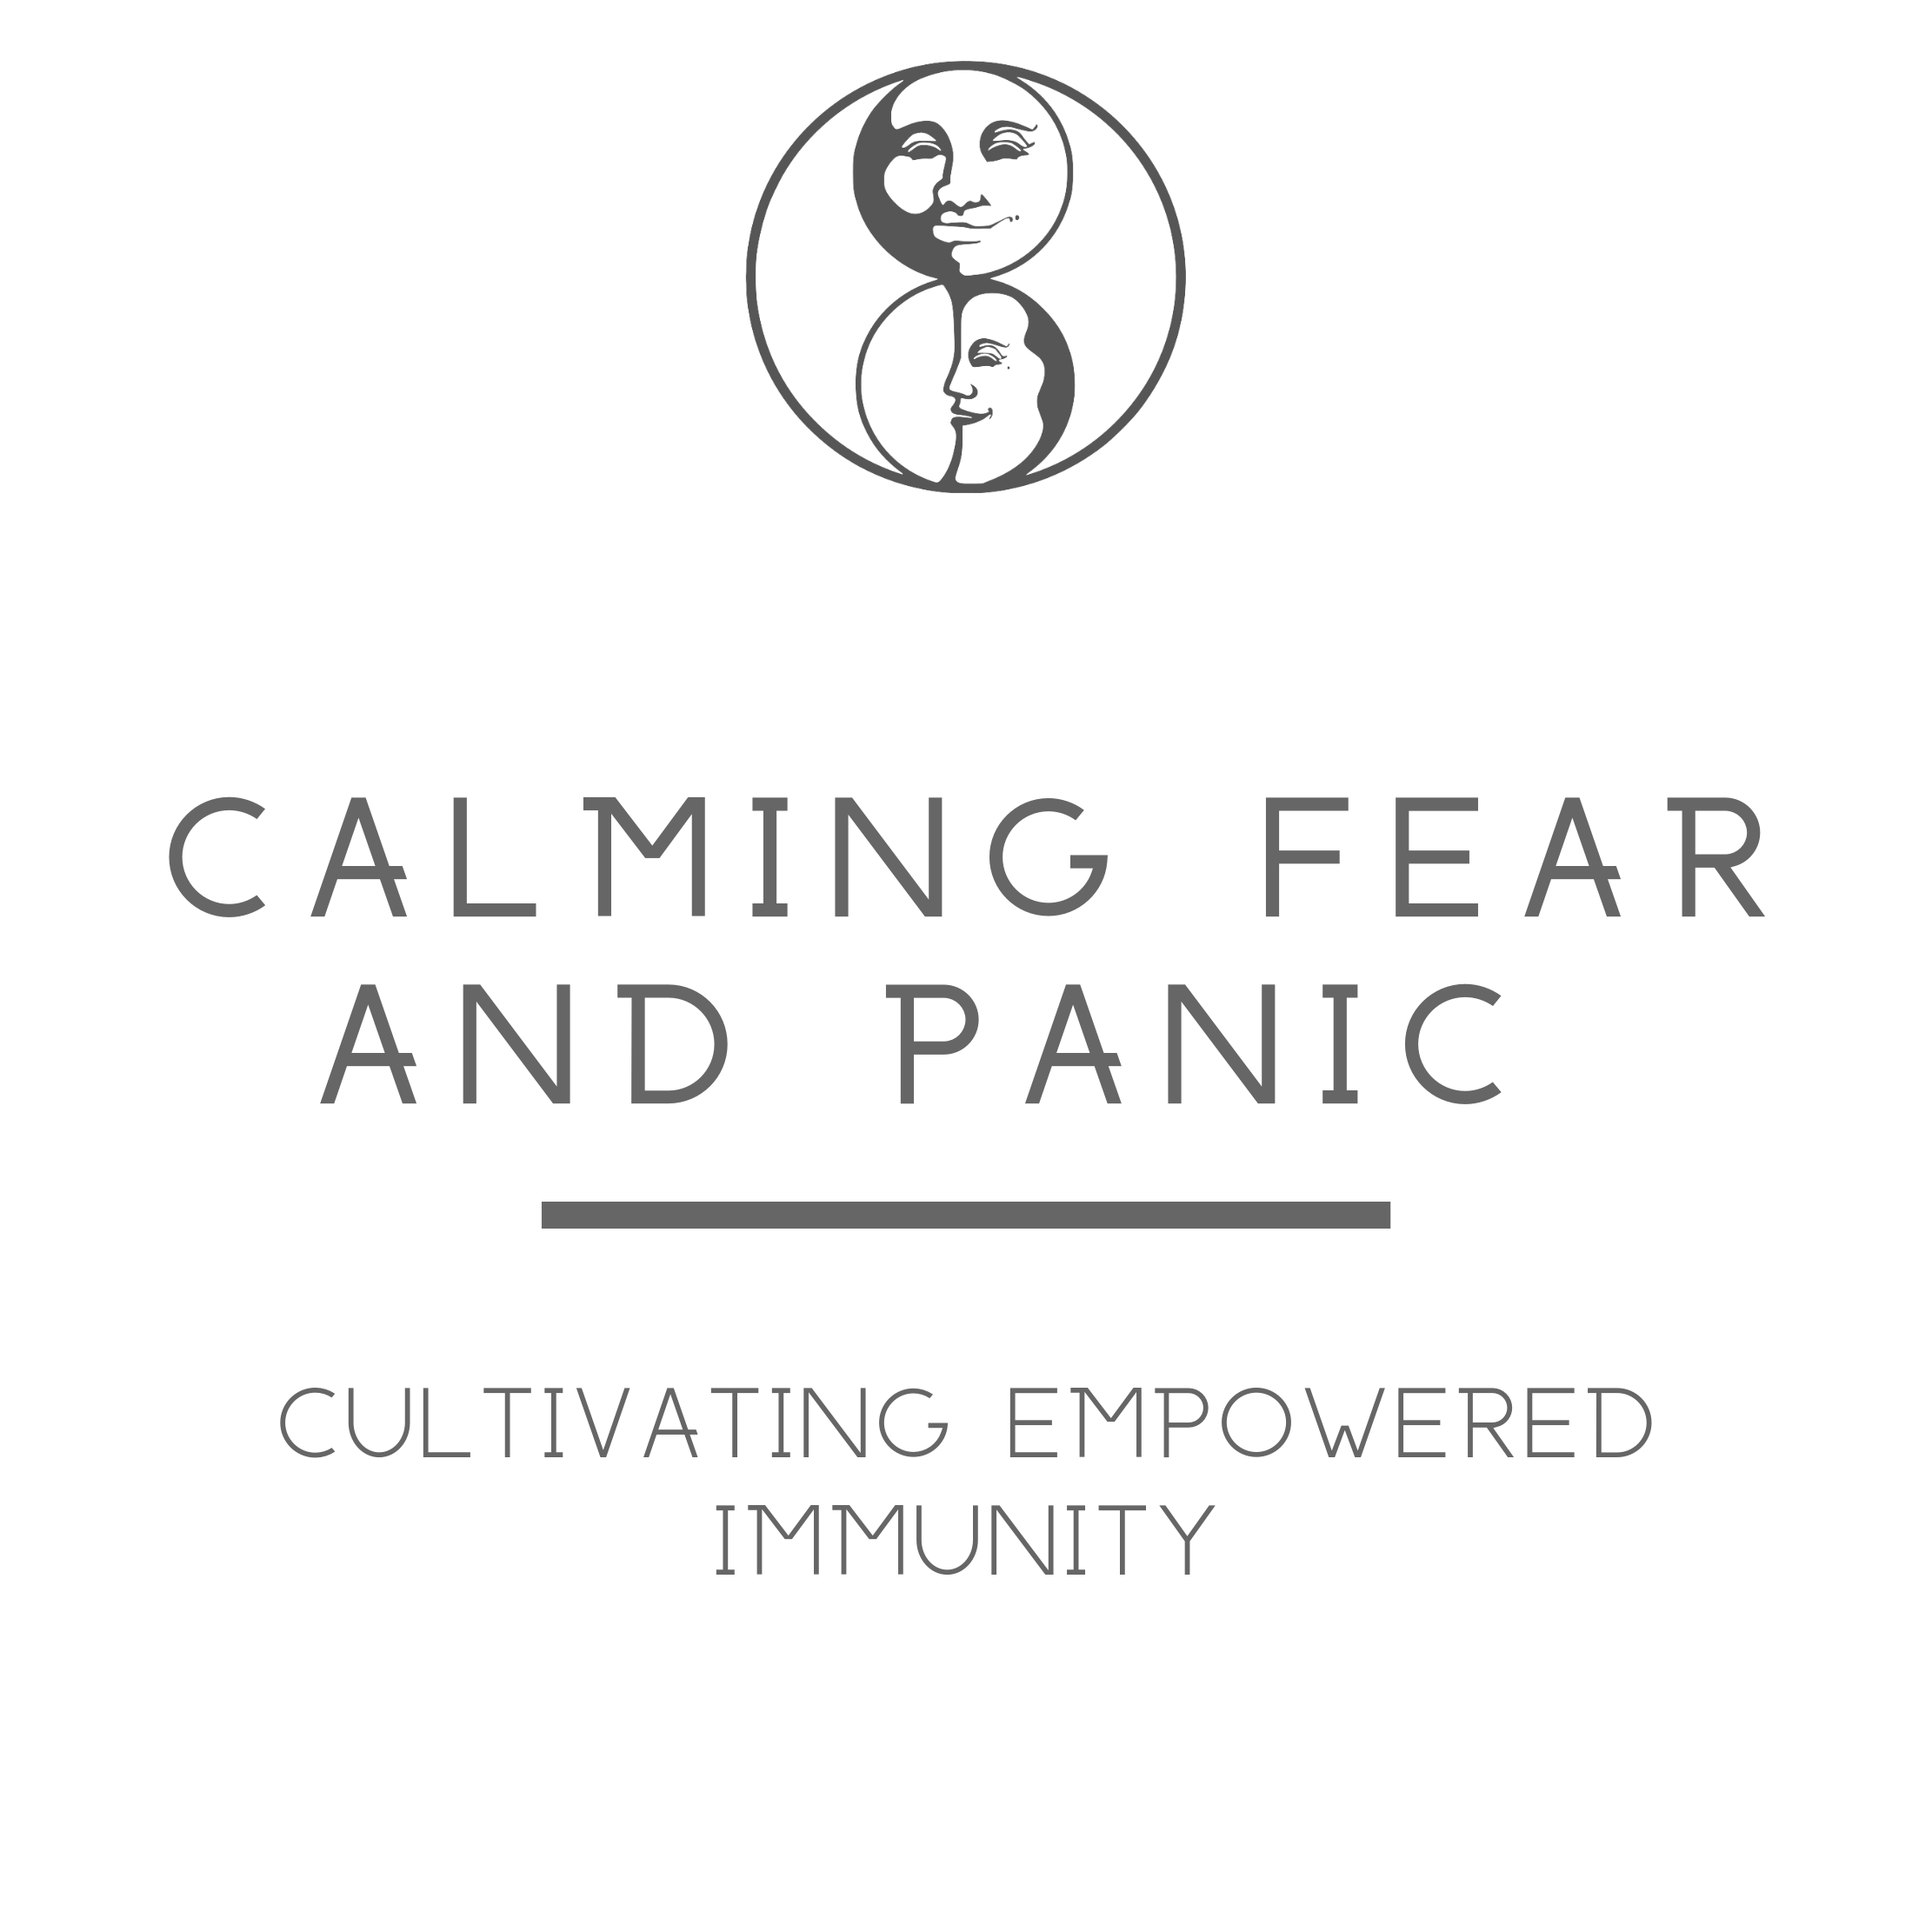 Calming Fear and Panic - Cultivating Empowered Immunity